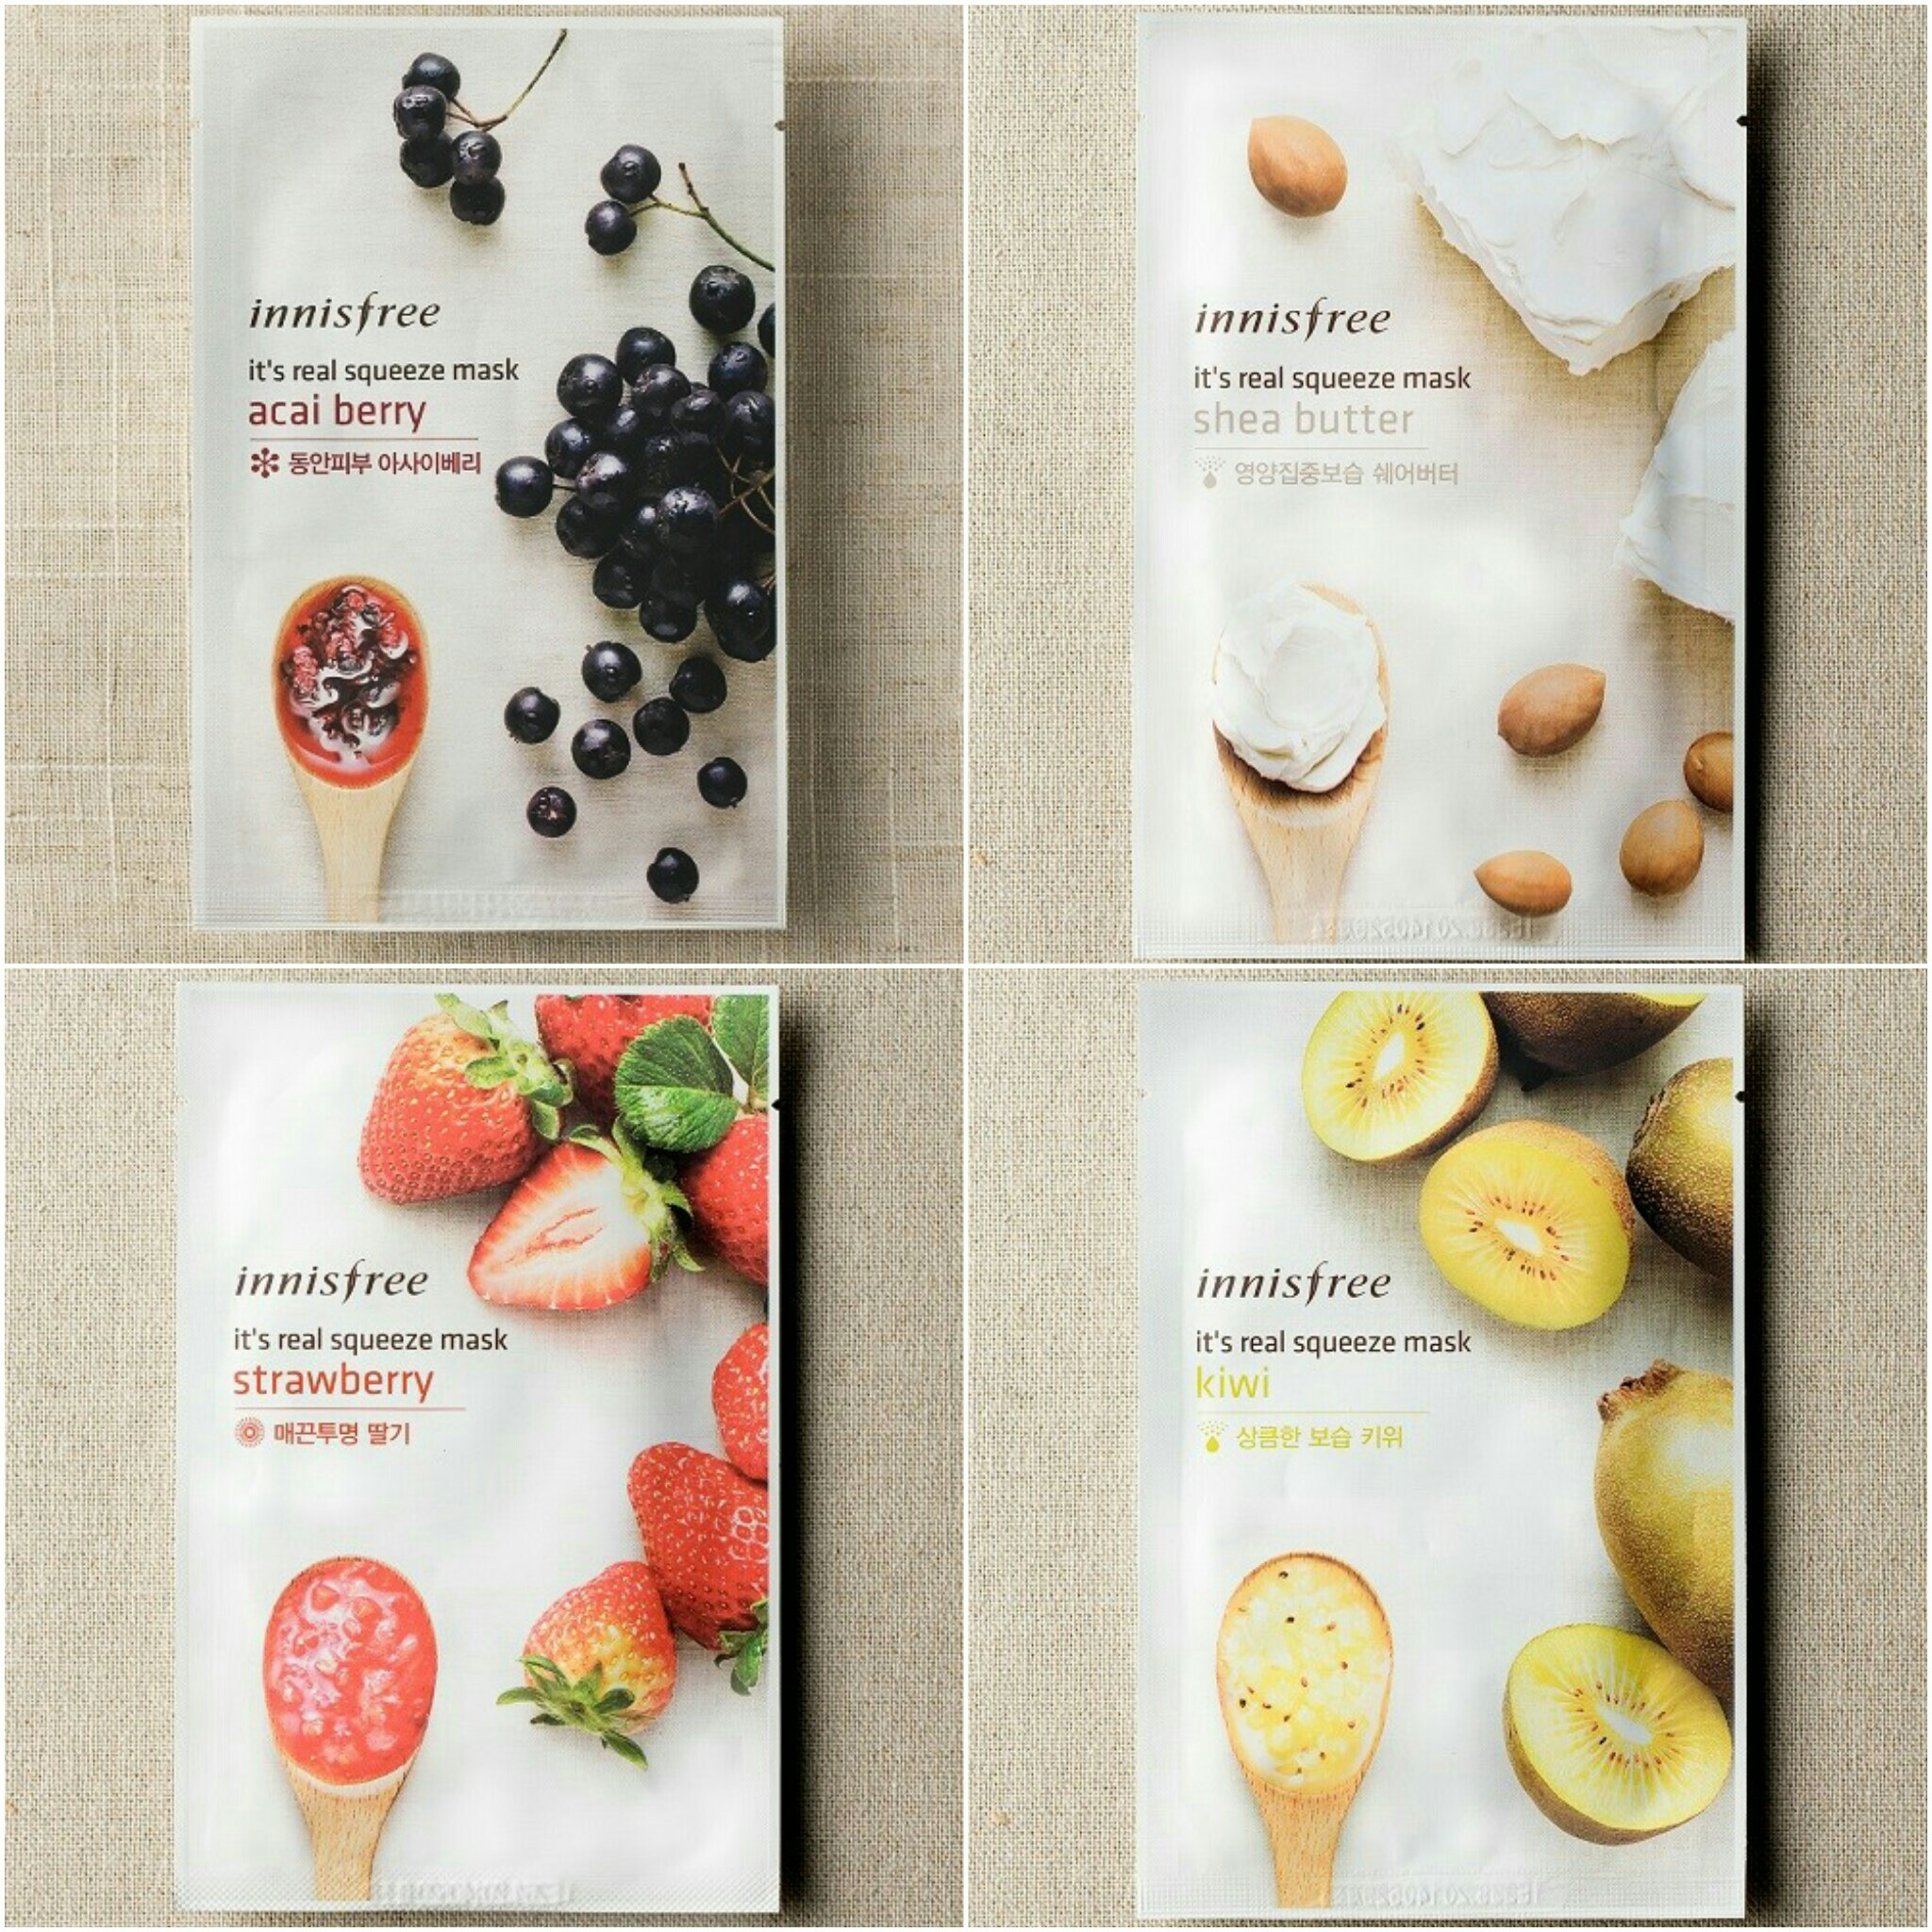 Good Lookinginc Shop Line Innisfree Real Squeeze Mask Strawberry Satuaninnisfree Its